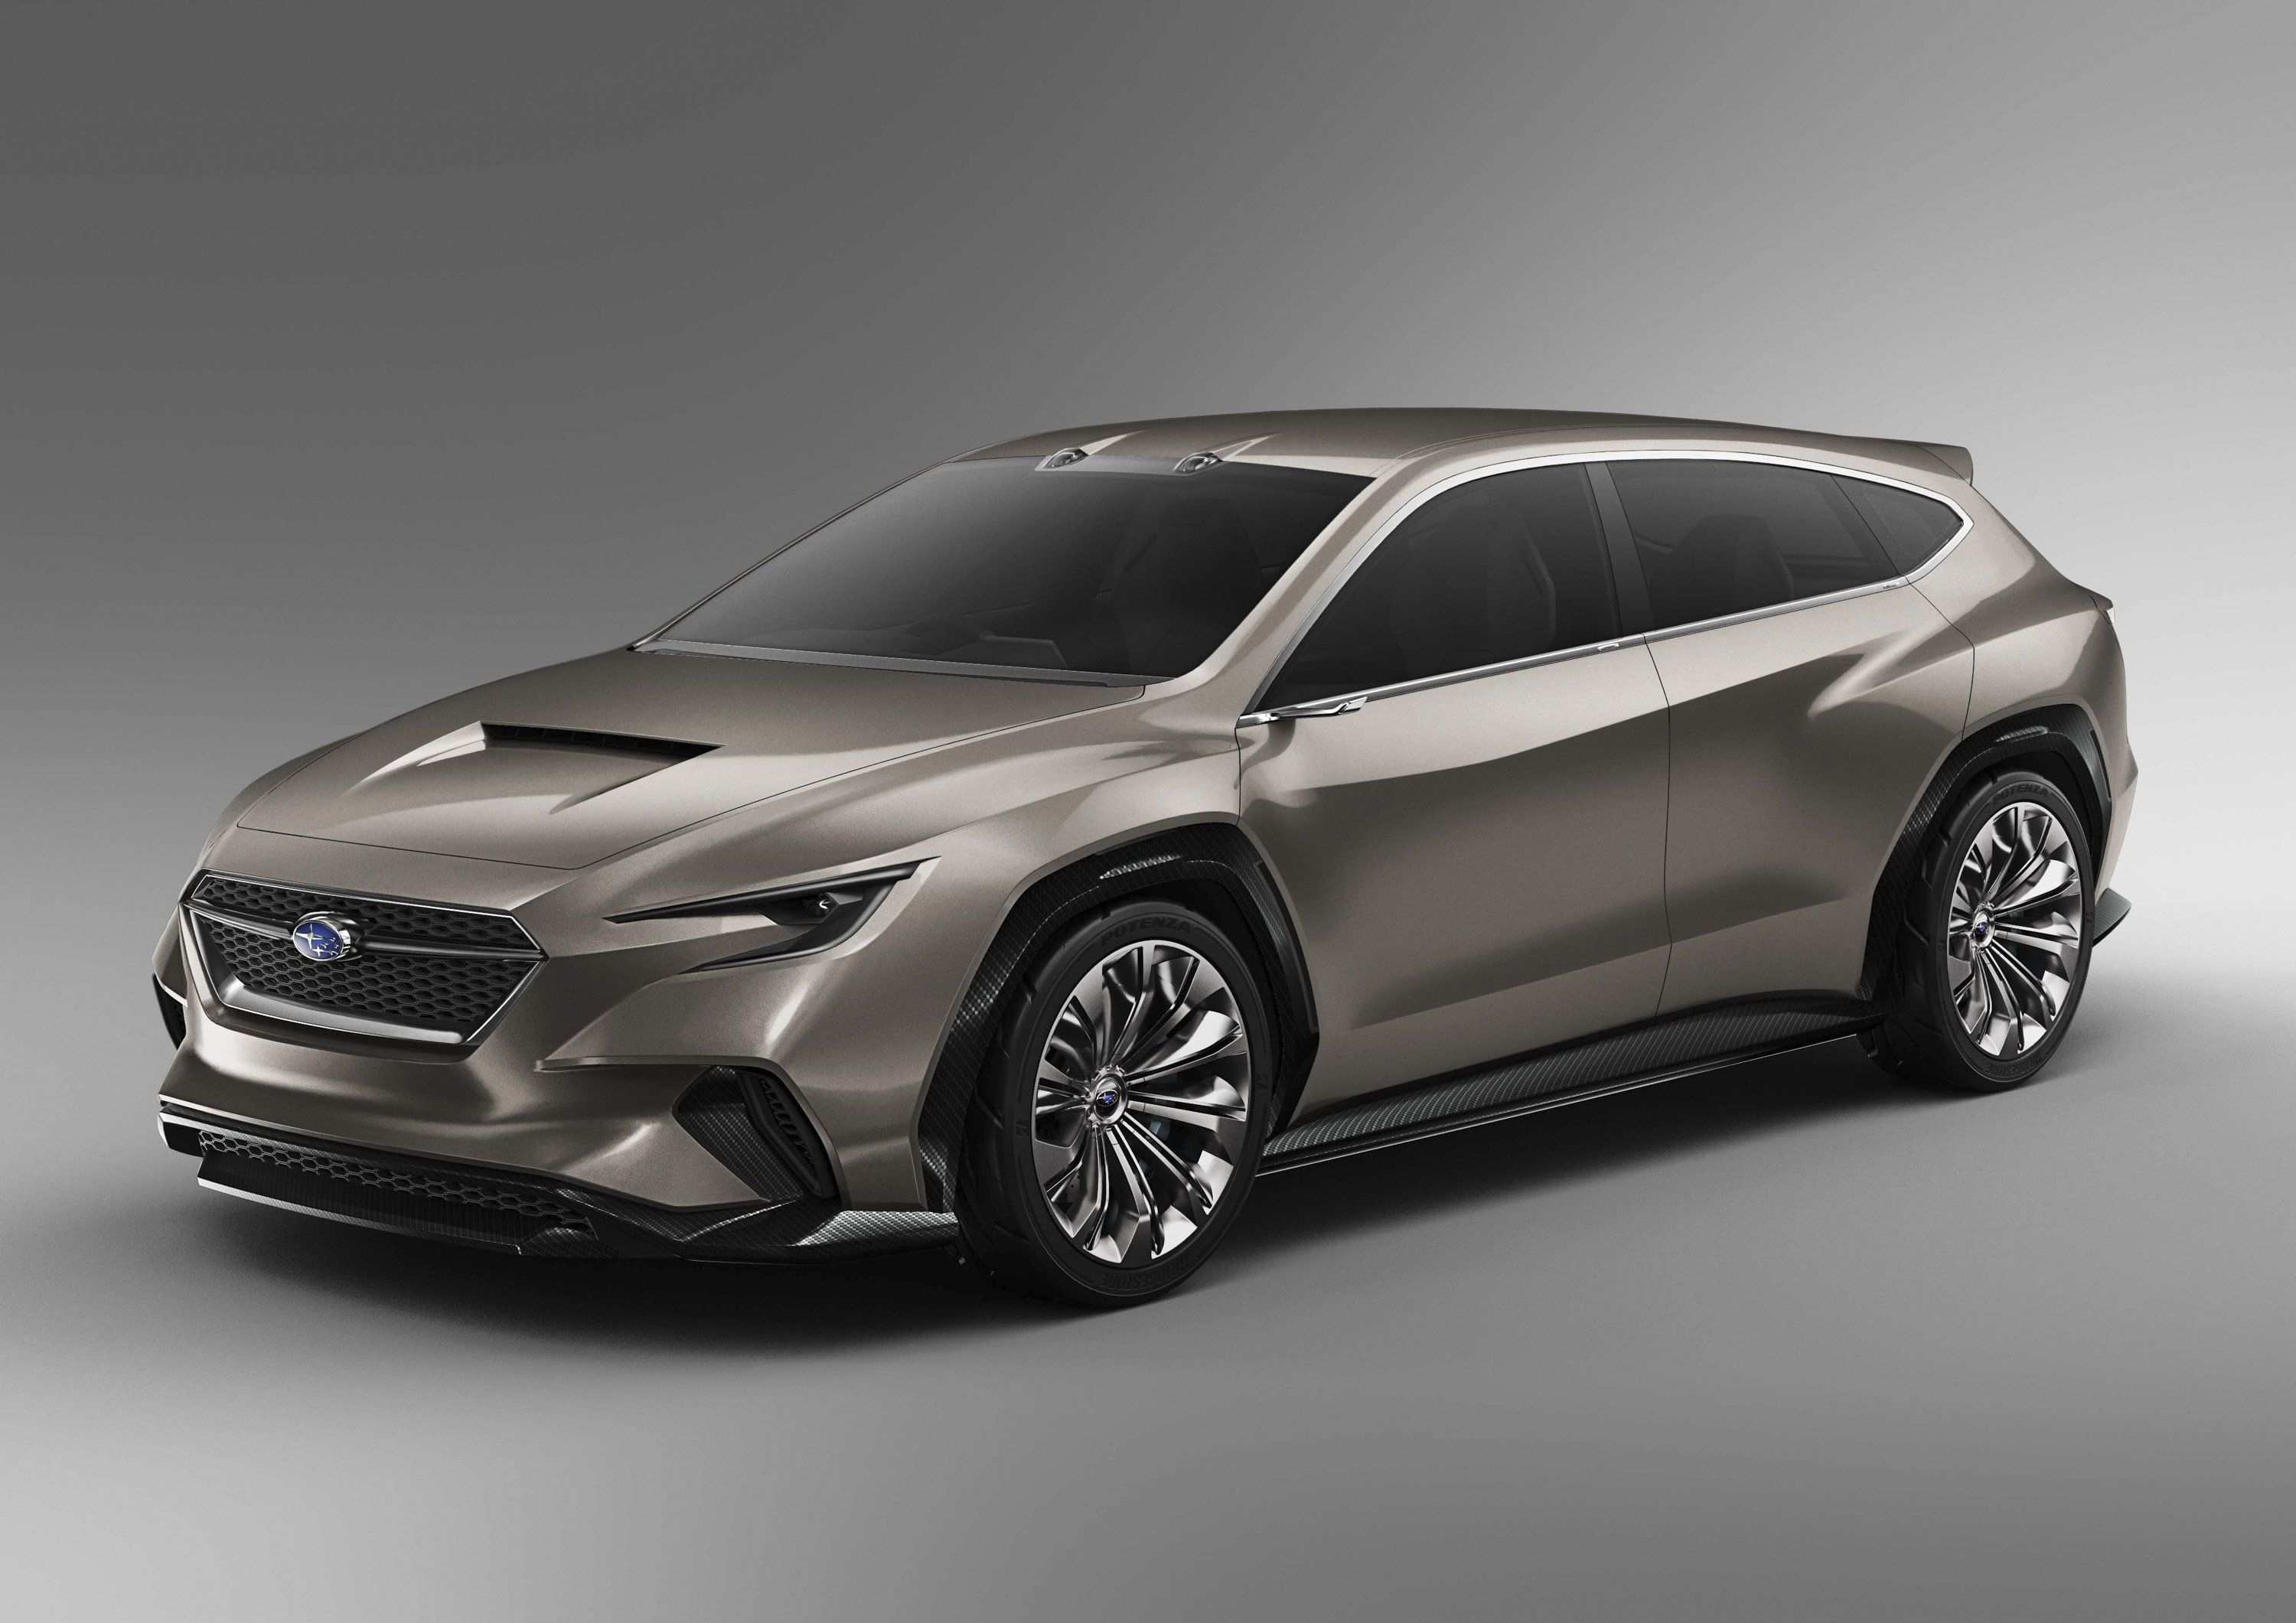 30 New Novita Subaru 2019 Release Date And Concept